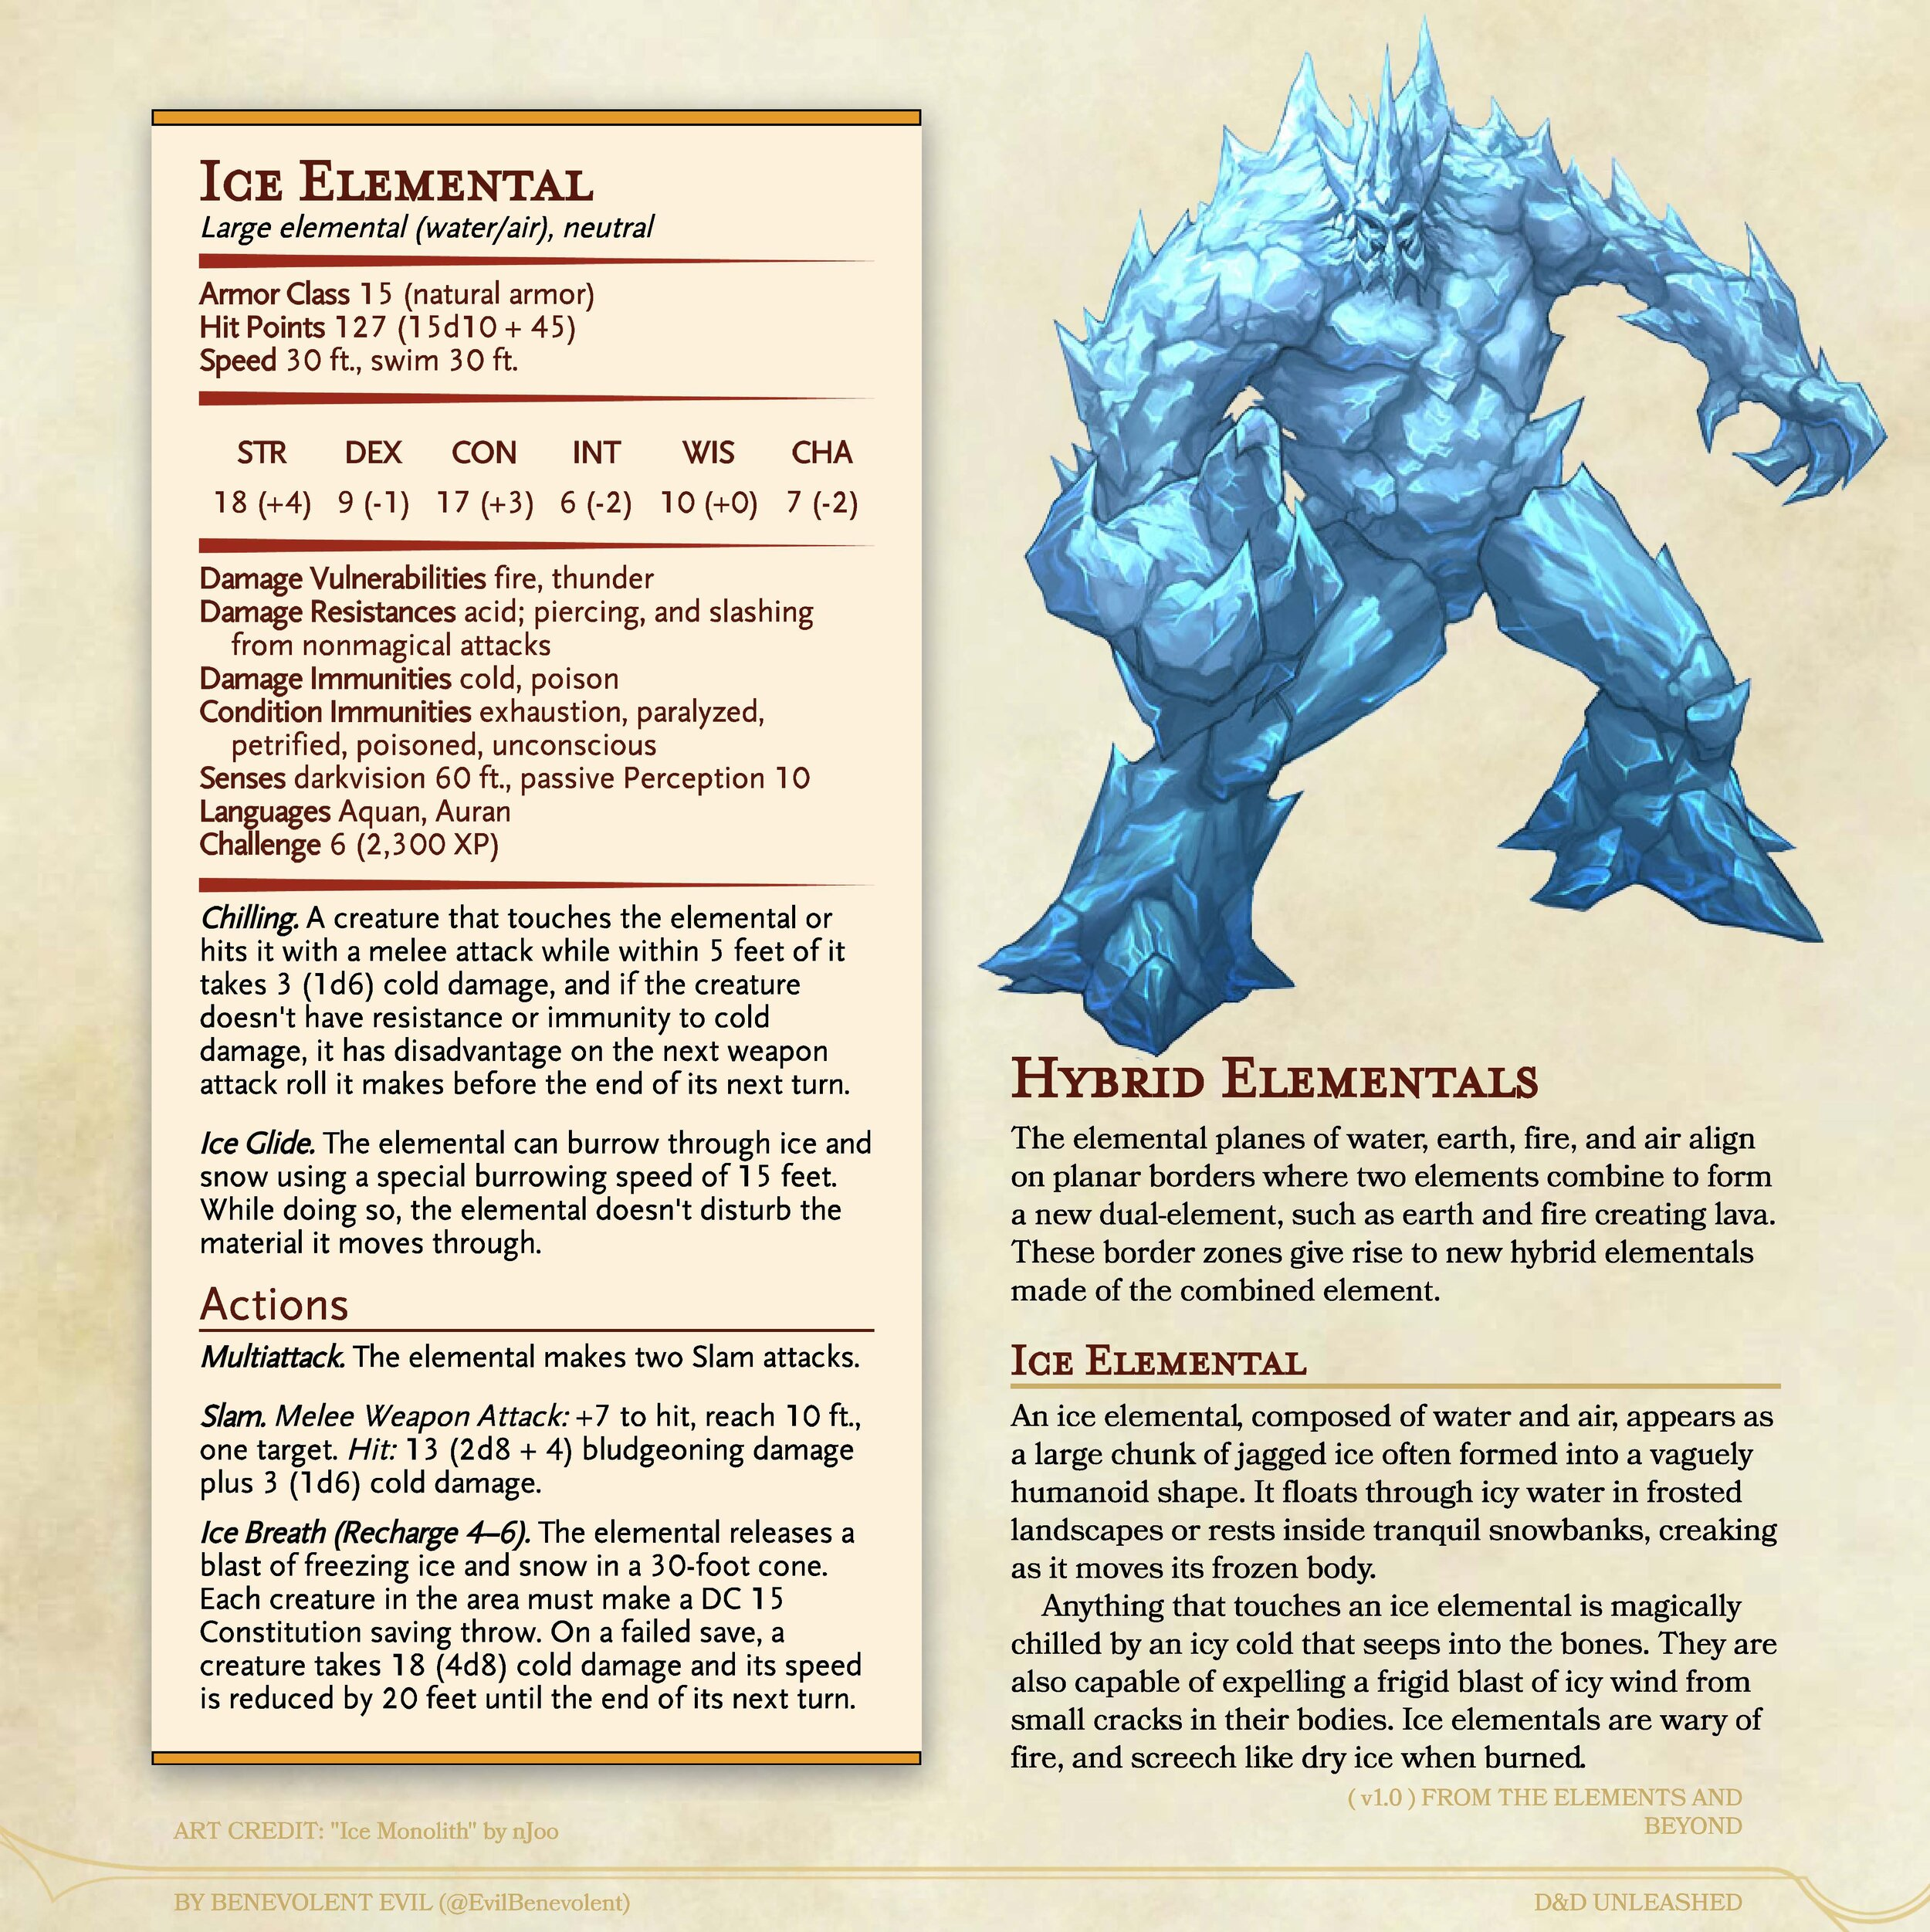 New Monster Ice Elemental Dnd Unleashed A Homebrew Expansion For 5th Edition Dungeons And Dragons It obeys any verbal commands that you issue to it (no action required by you). new monster ice elemental dnd